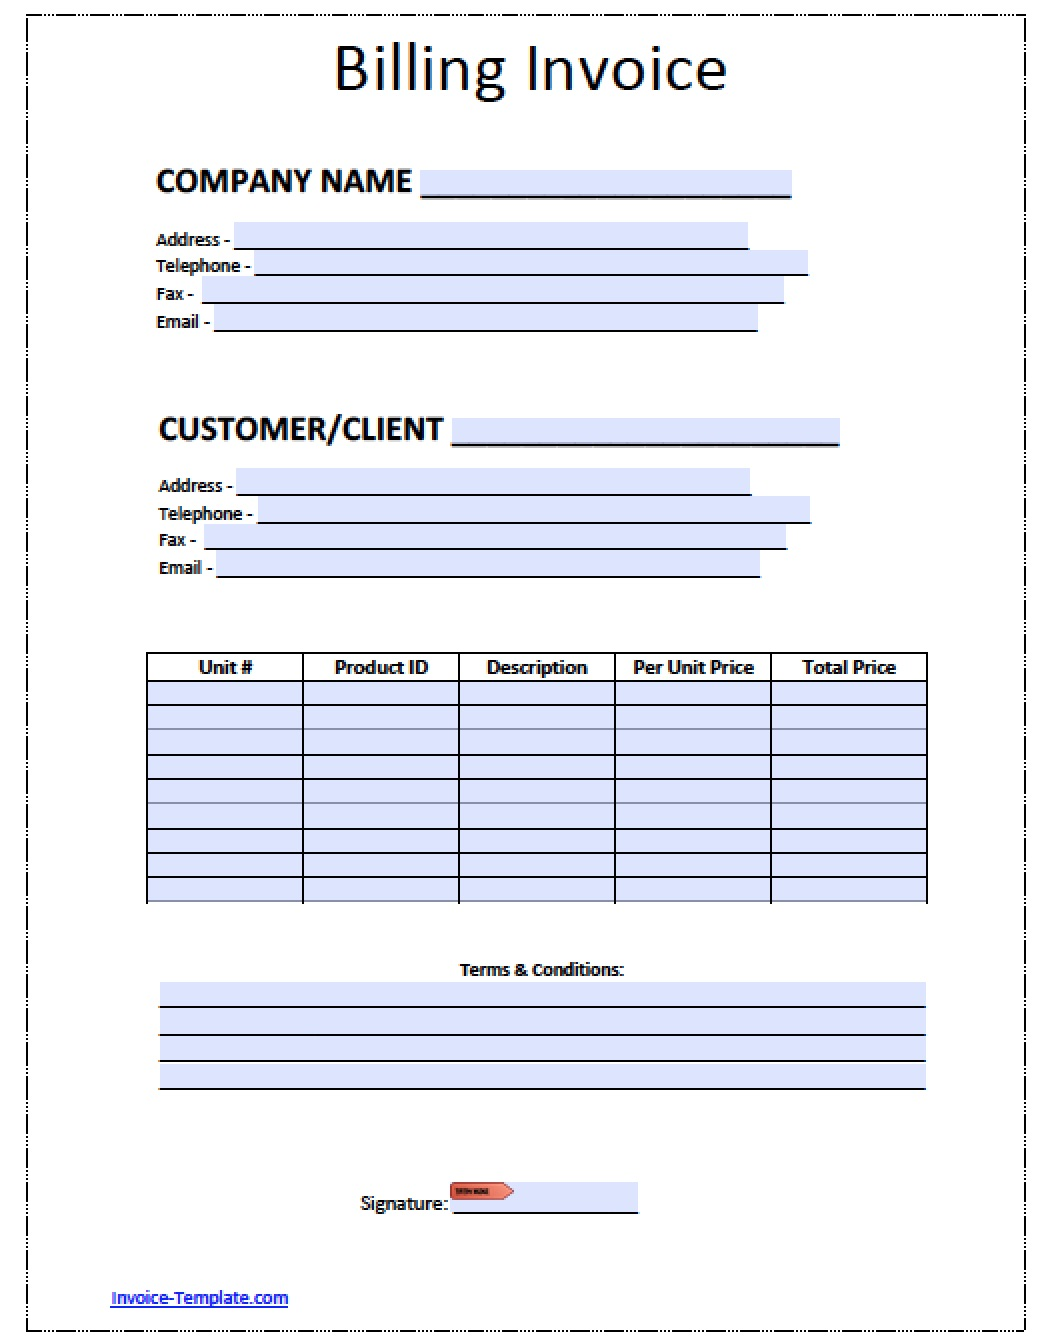 Free Billing Invoice Template Excel PDF Word Doc - Invoice examples in word for service business